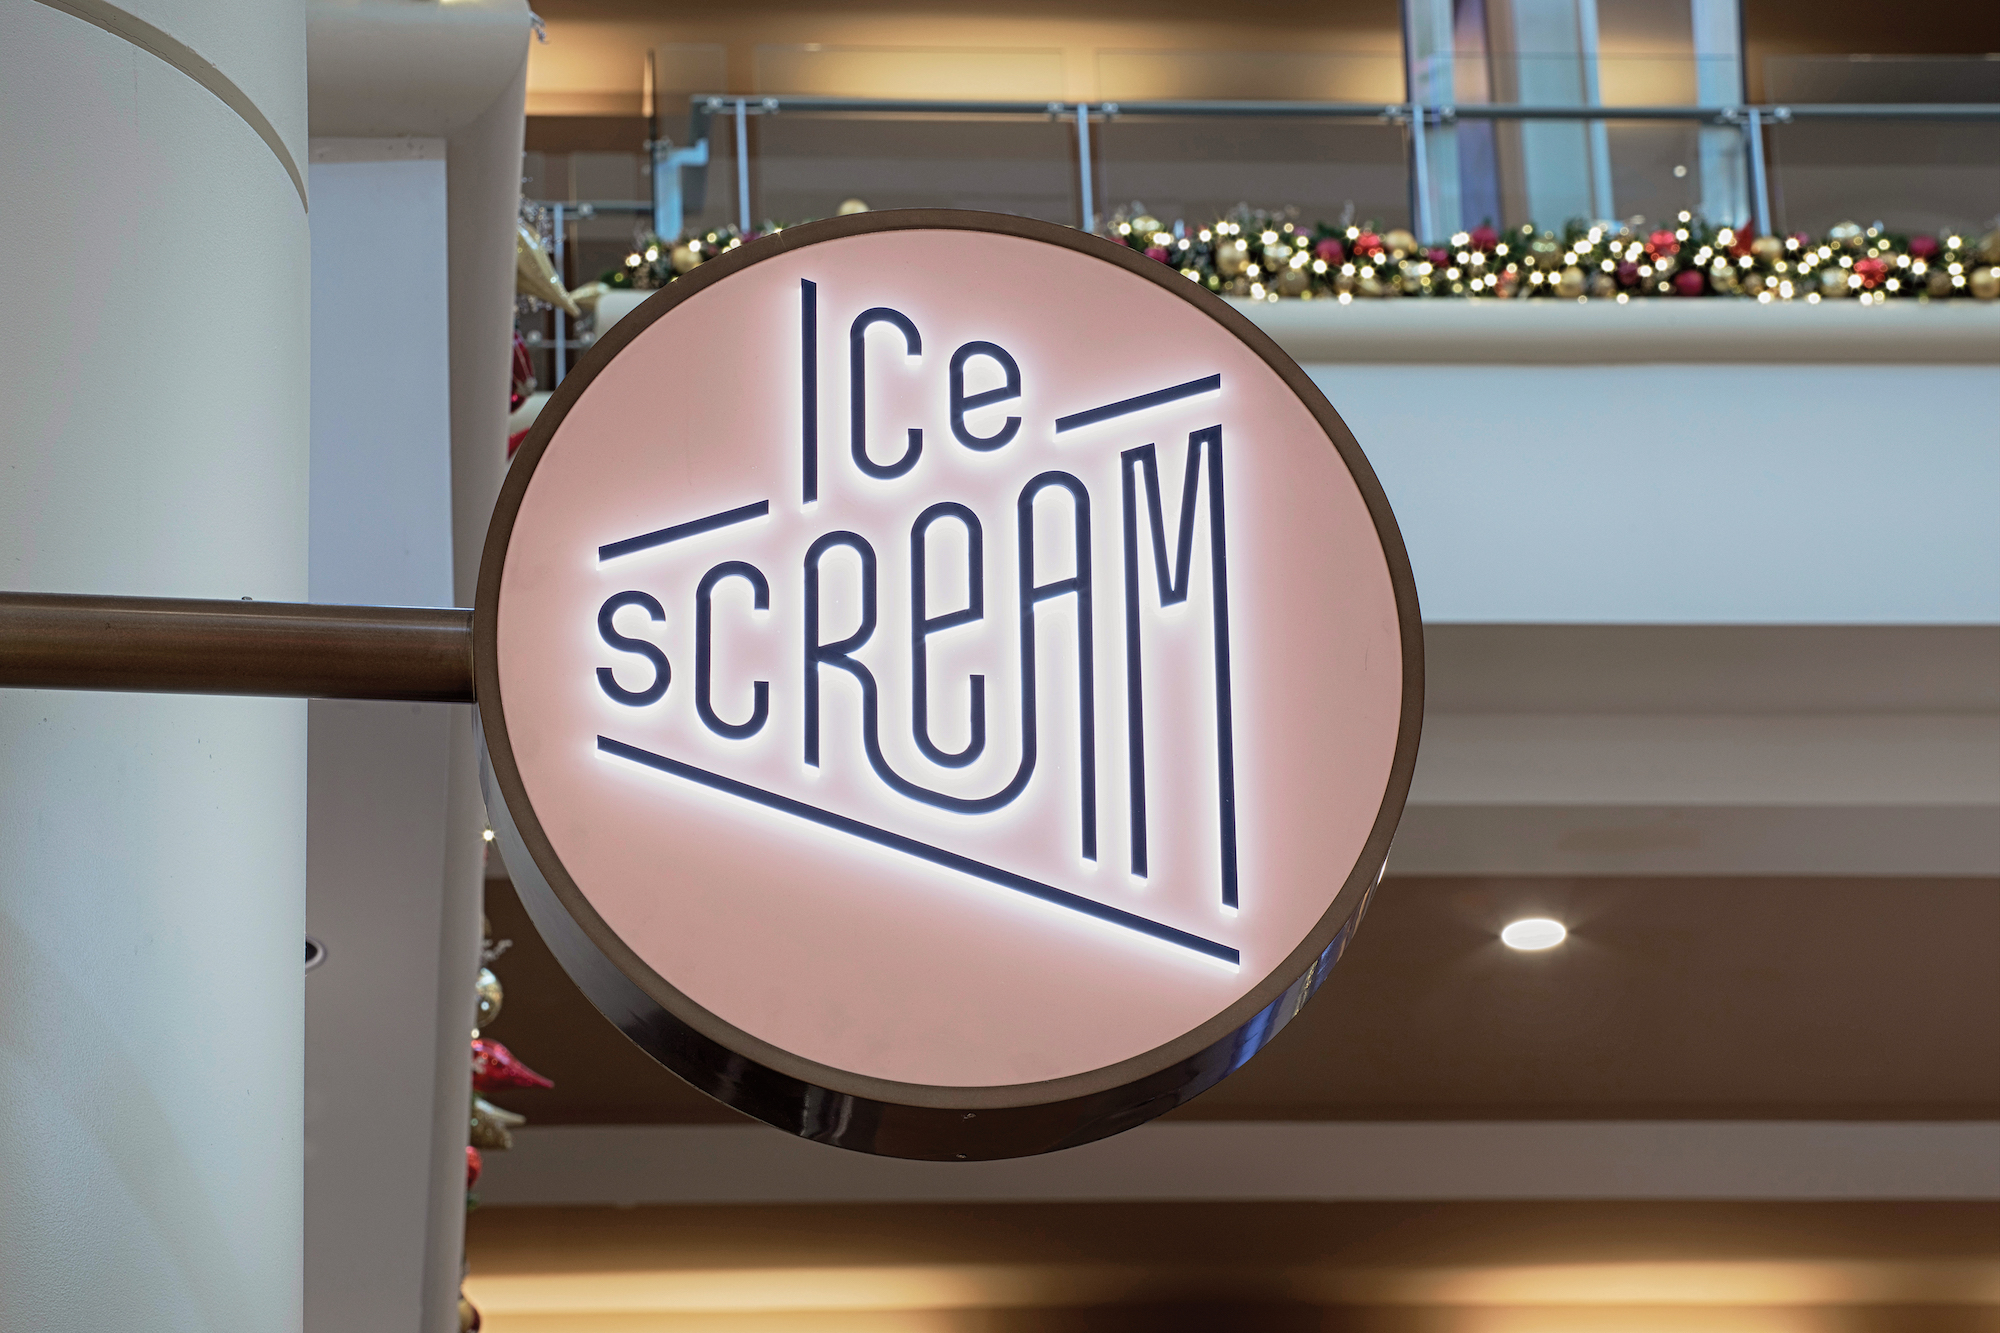 Ice Scream, Asthetíque, Bronx Ice Cream